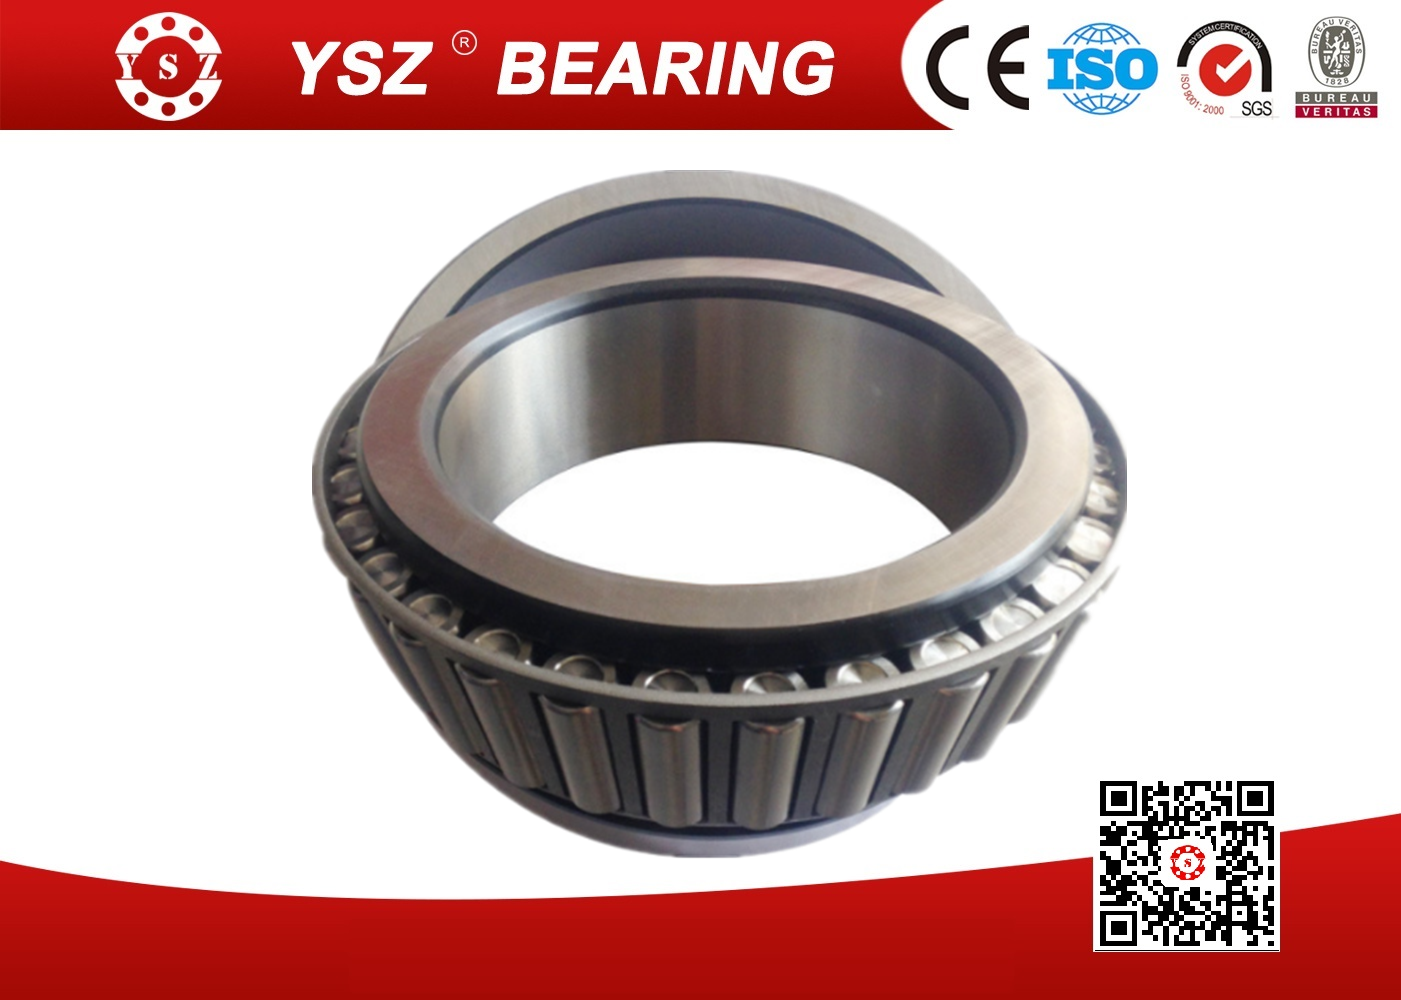 GCr15 Steel Single Row Tapered Roller Bearings For Heavy Truck 32028 140*210*45 mm_4